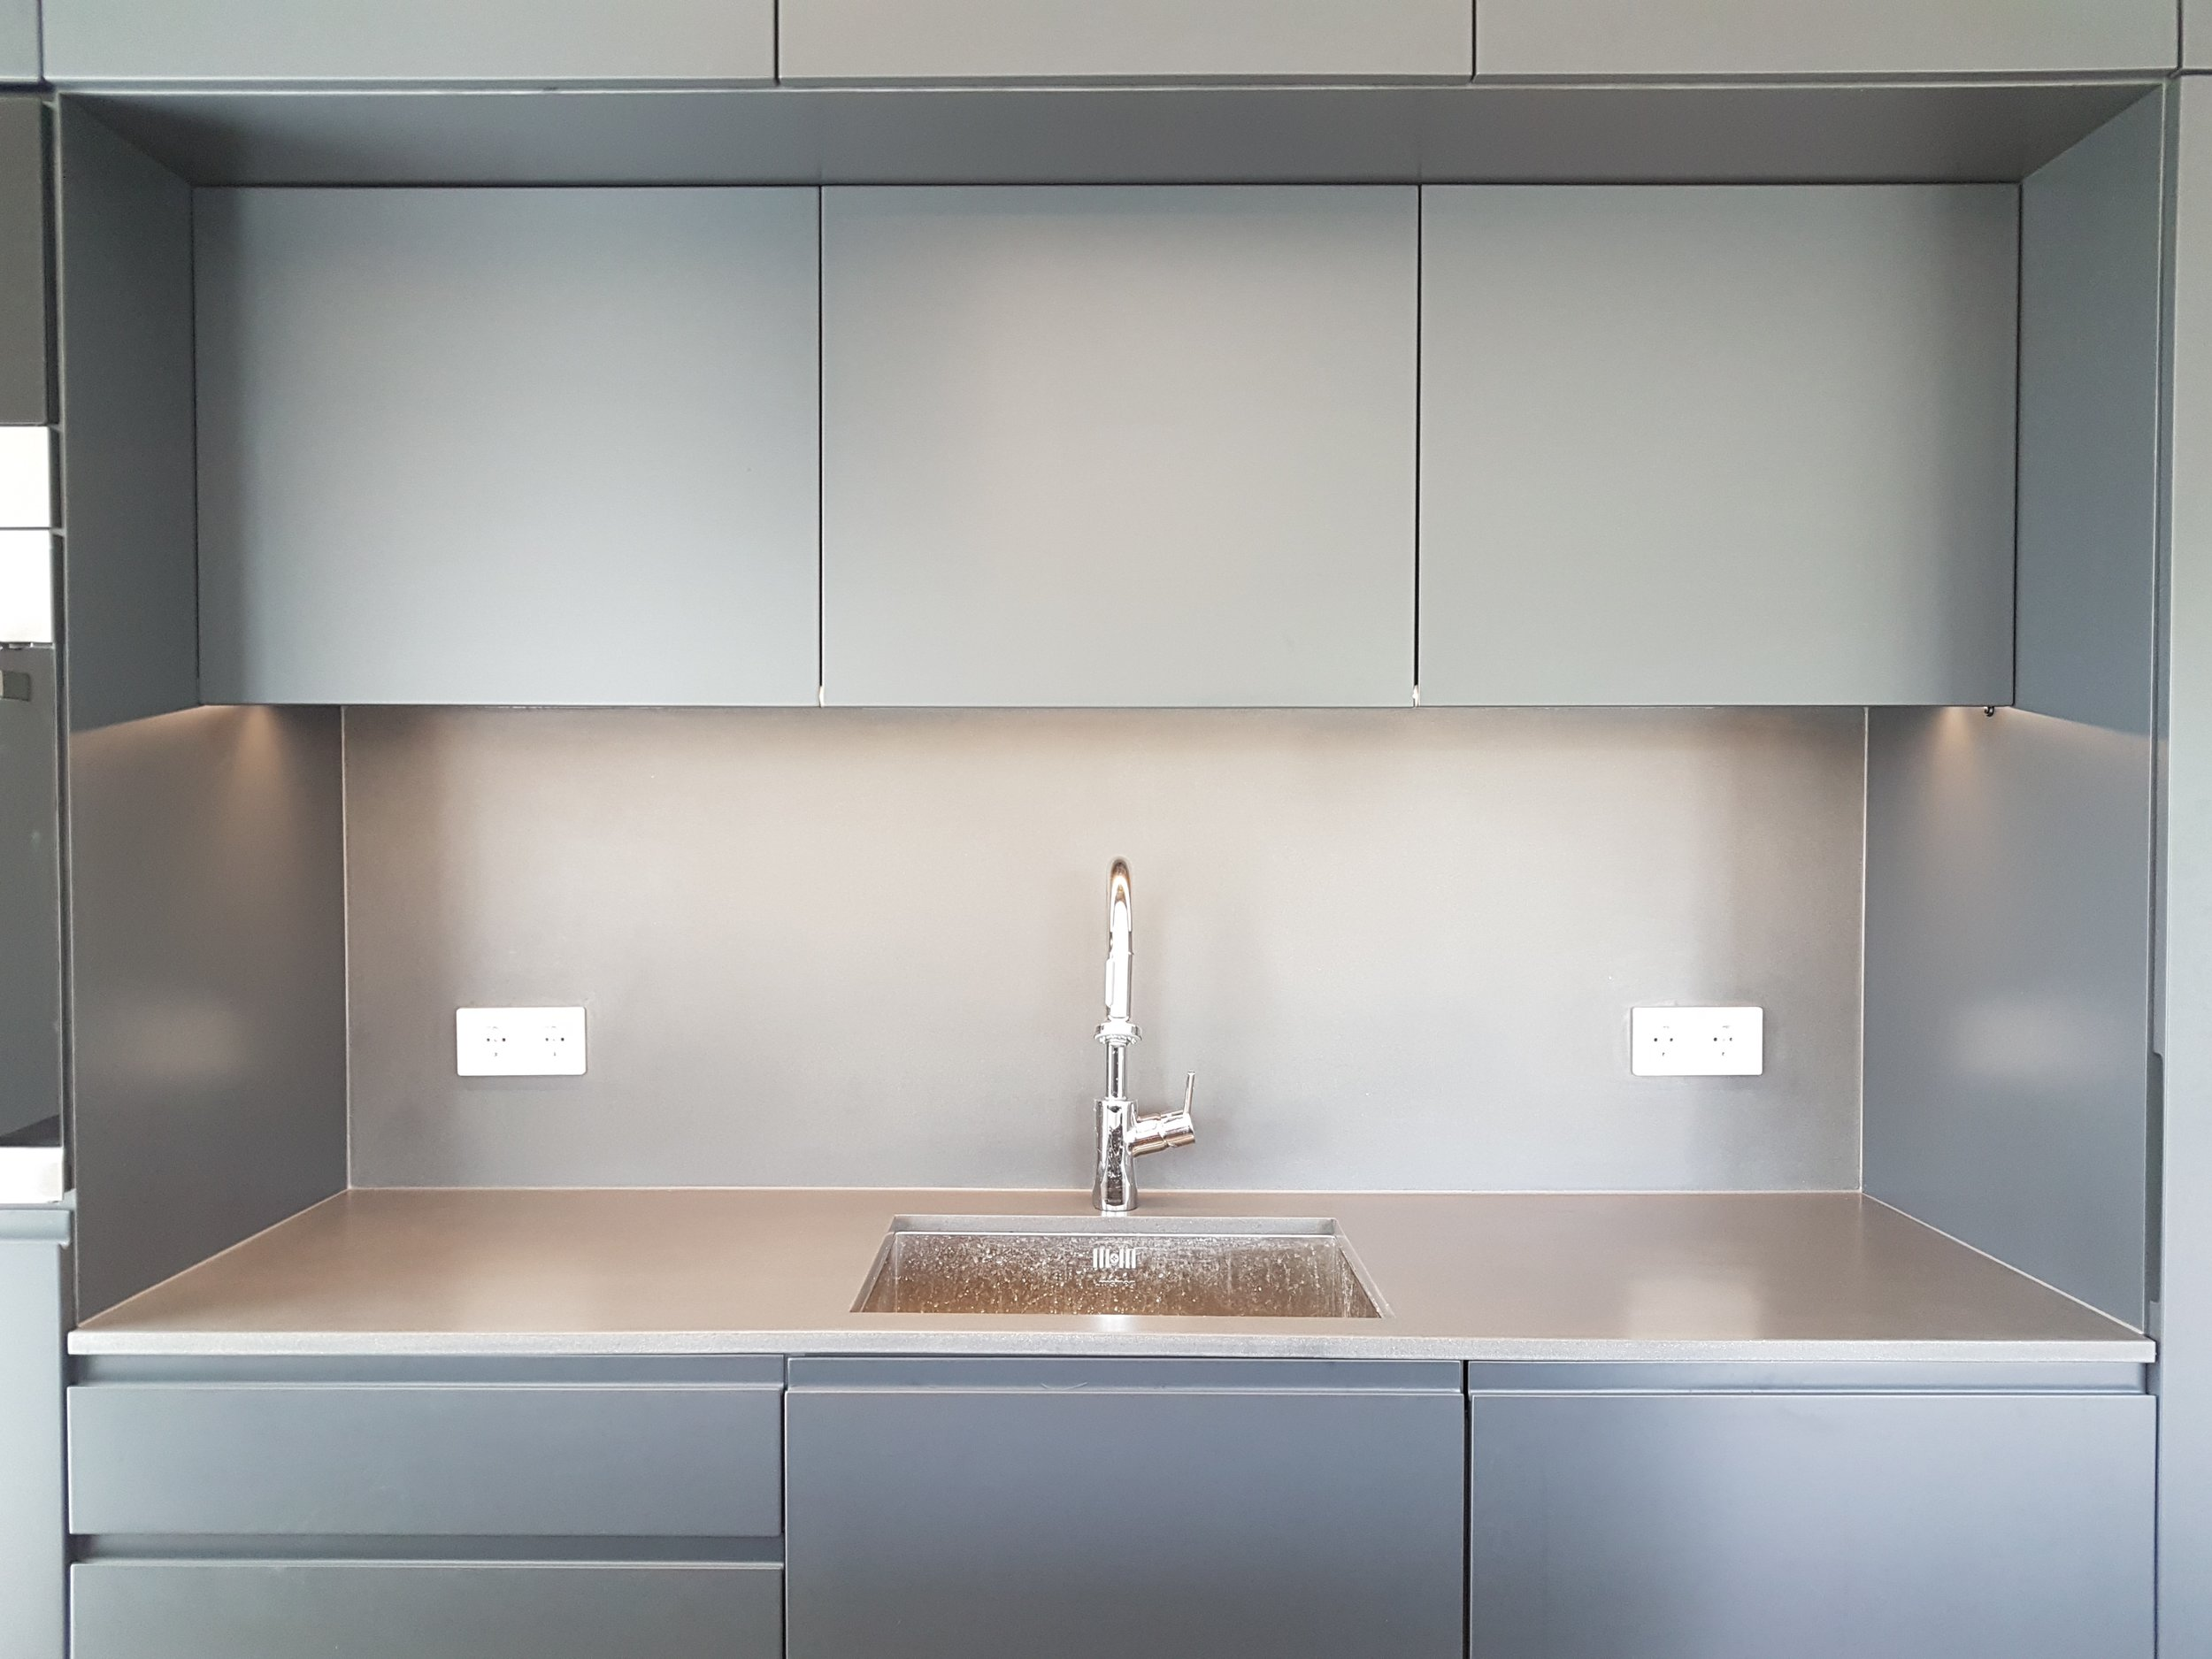 Kitchen worktops and sinks  We are able to produce kitchen tops from 10 to 200 mm in thickness. Maximum slab lenght depends on project and concrete type but can be over 4 meters. We have many sink molds ready-made at your kitchen project. Please see the table of sink mold measures  here!